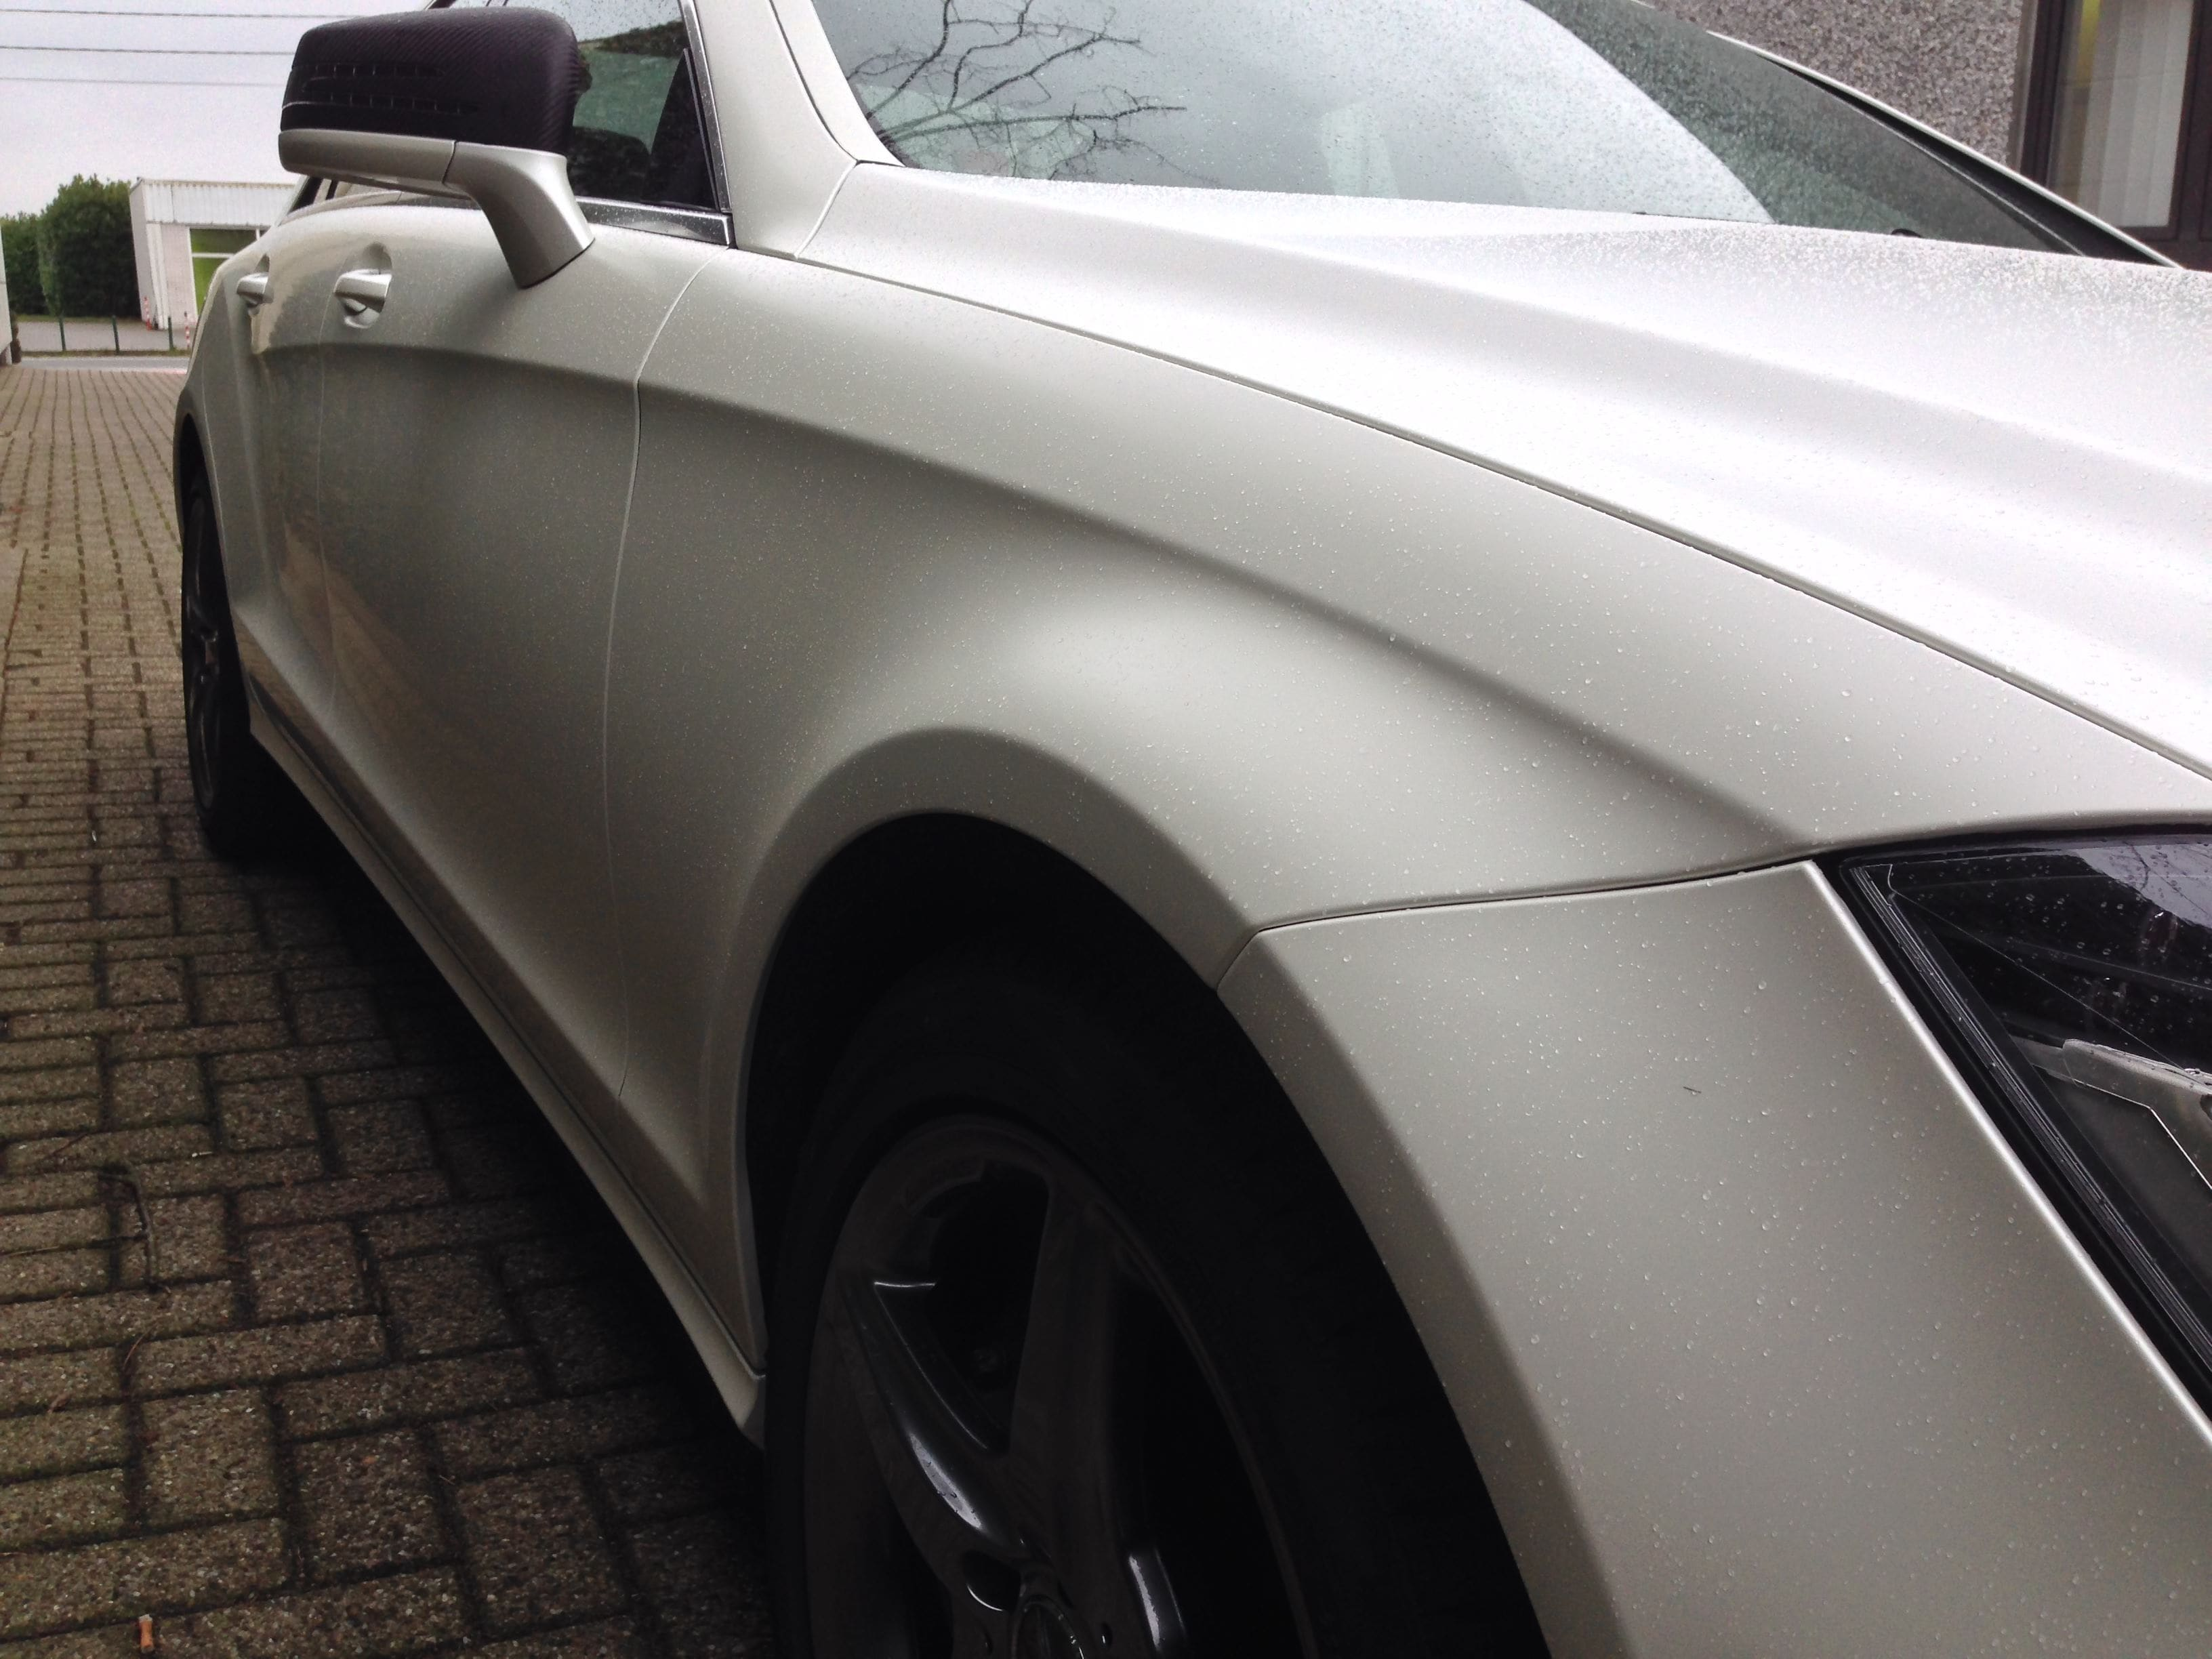 Mercedes CLS met White Satin Pearl Wrap, Carwrapping door Wrapmyride.nu Foto-nr:6209, ©2020